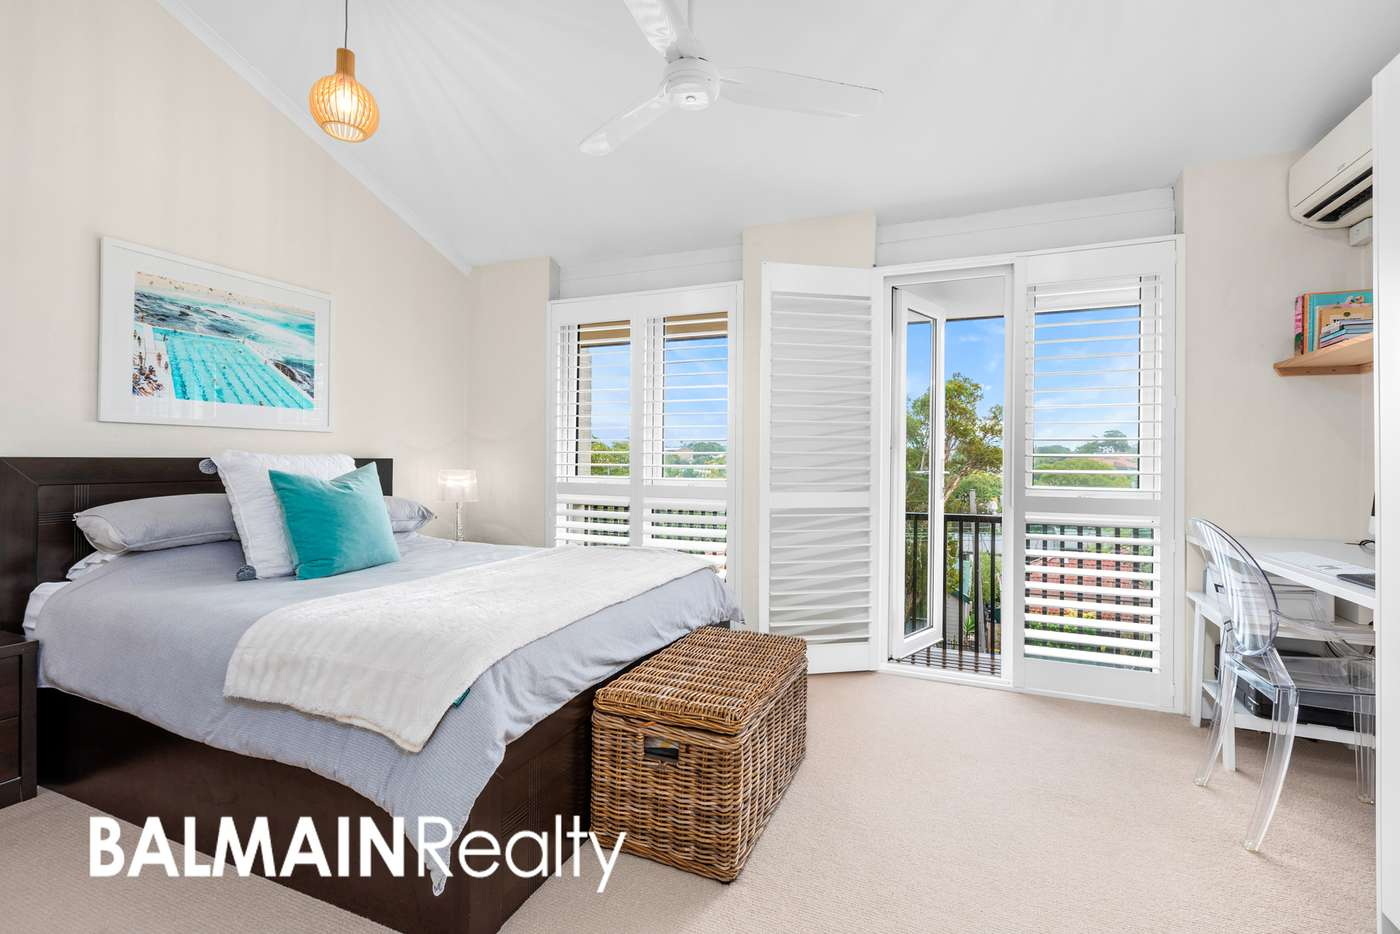 Sixth view of Homely house listing, 72A Lamb Street, Lilyfield NSW 2040